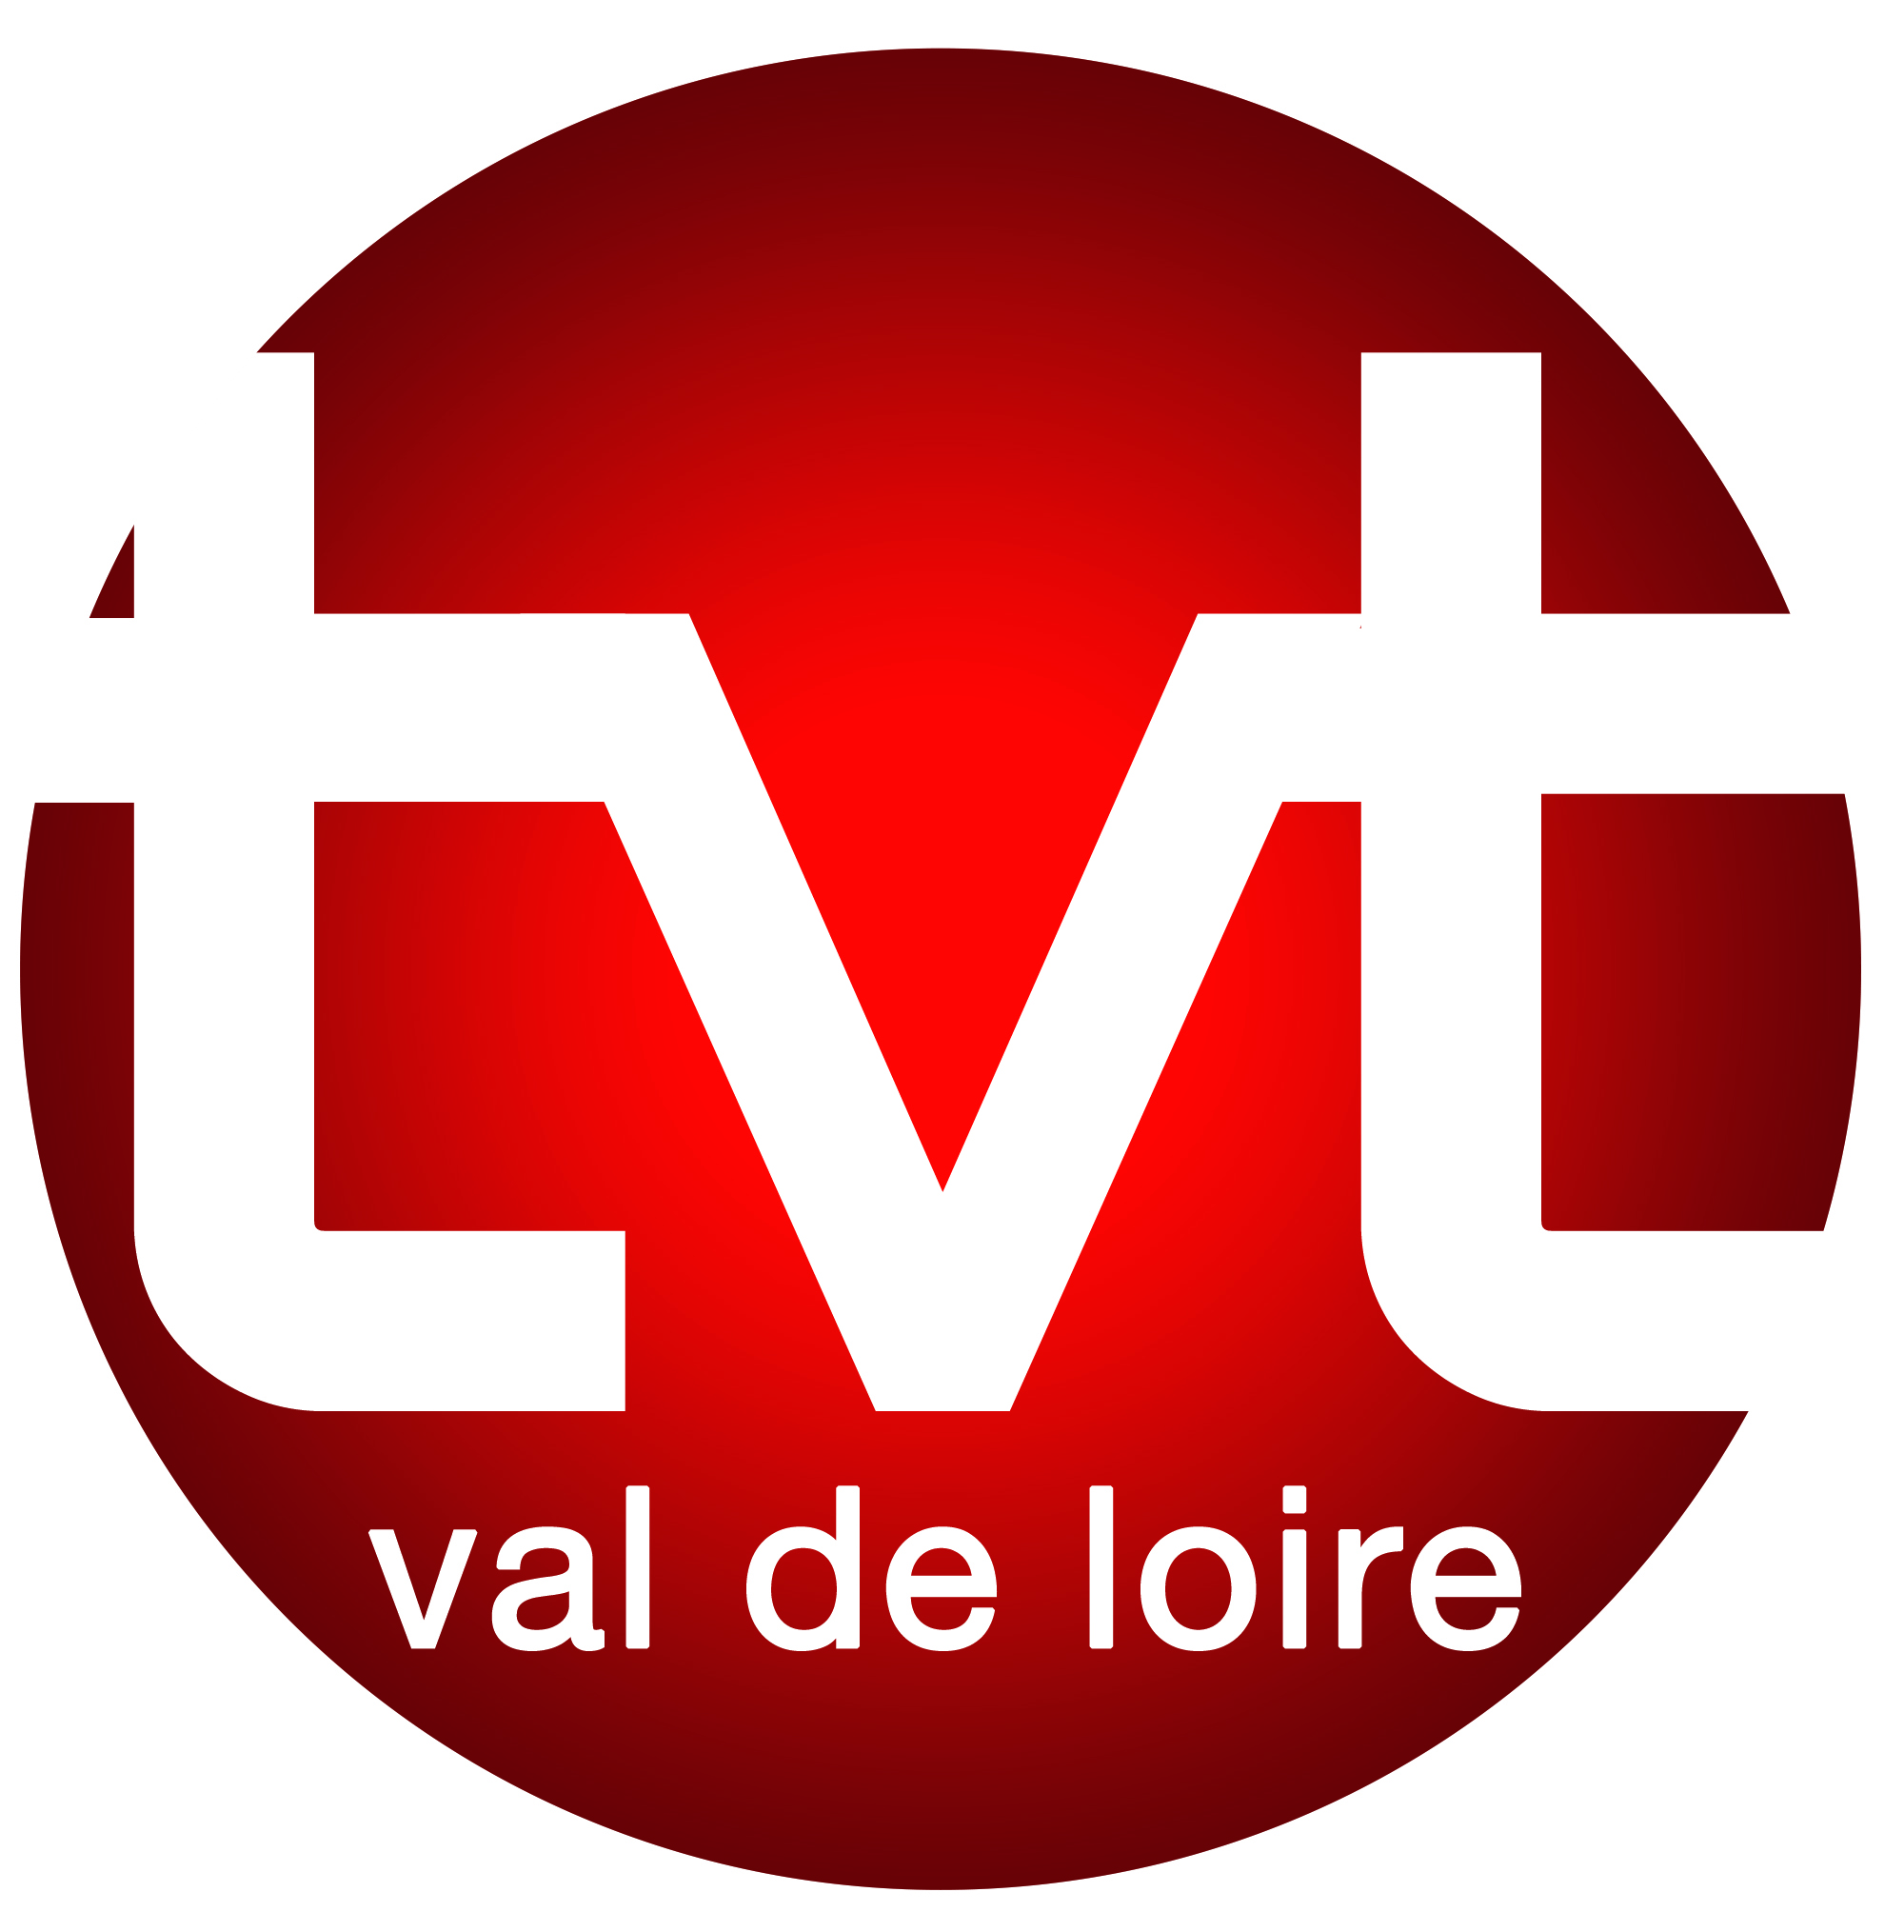 logotvt2016 copie